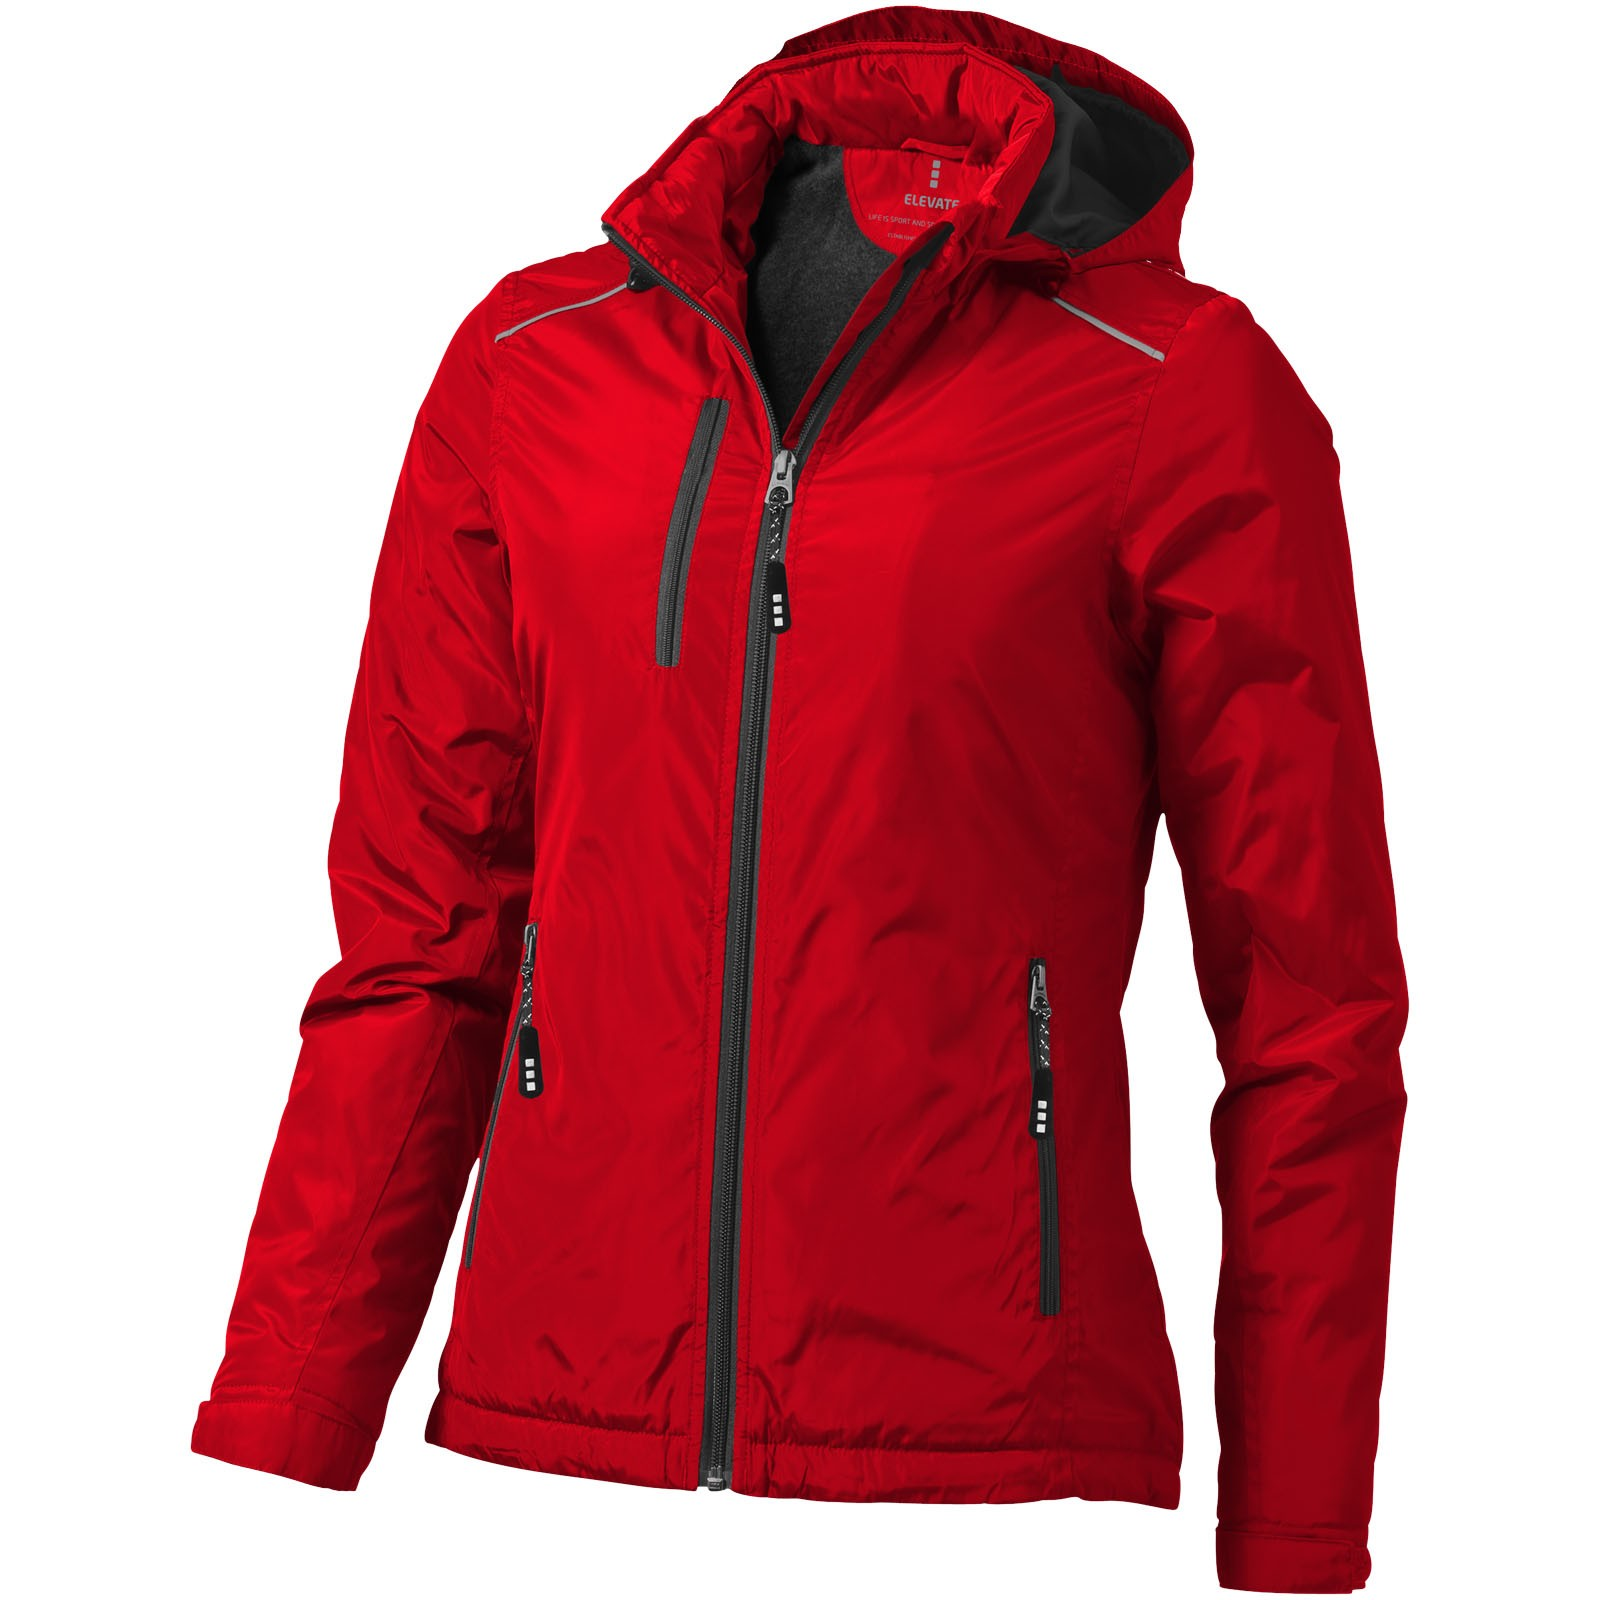 Smithers fleece lined ladies jacket - Red / XL